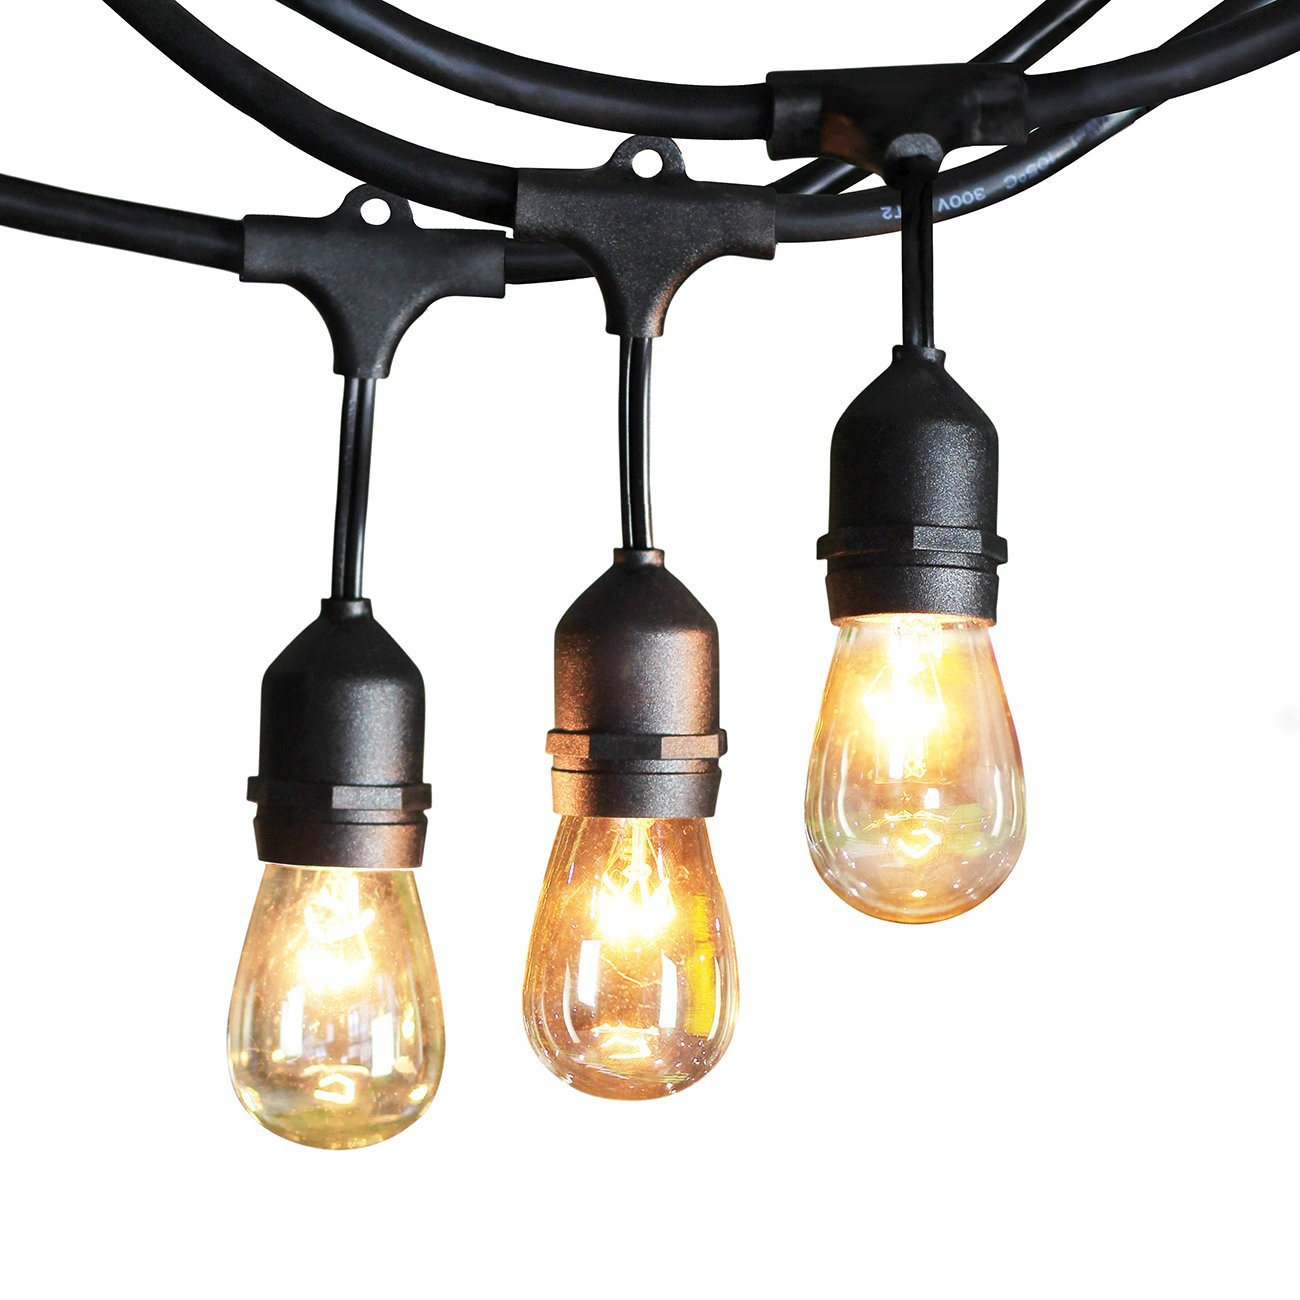 Ktaxon String Lights,Outdoor String Light with Sockets, S14 Bulbs included 芒鈧€?Vintage Edison String Lights Great for Commercial Lighting, Patio, Wedding - image 4 of 7